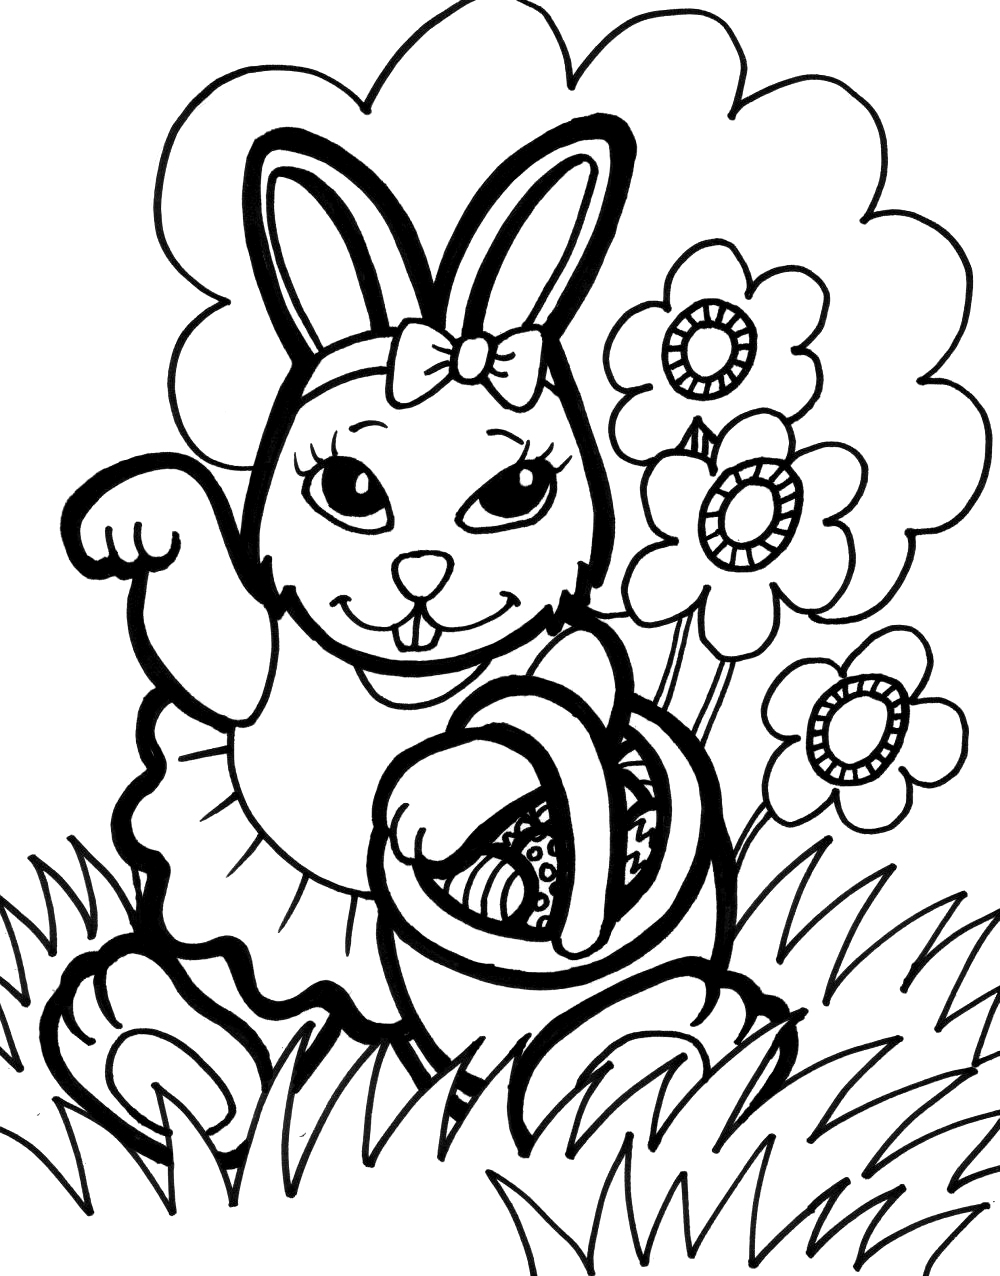 1000x1276 Bunny Coloring Pages Best Coloring Pages For Kids Bunny Coloring